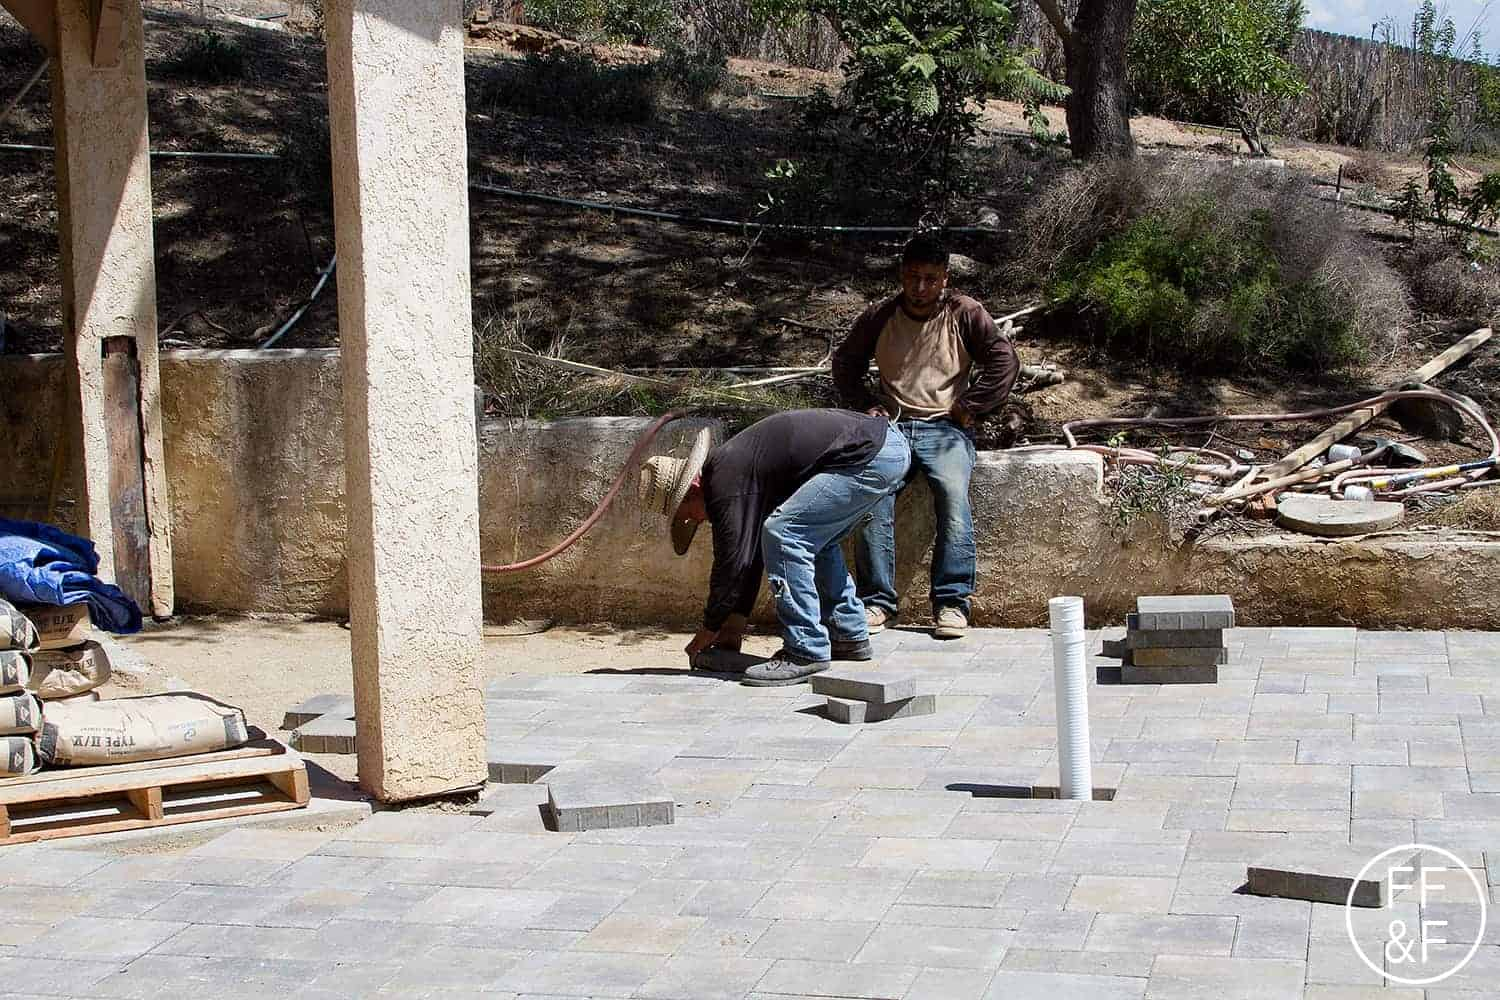 Placing the pavers to extend the entertaining space in the backyard. #bethhomeproject